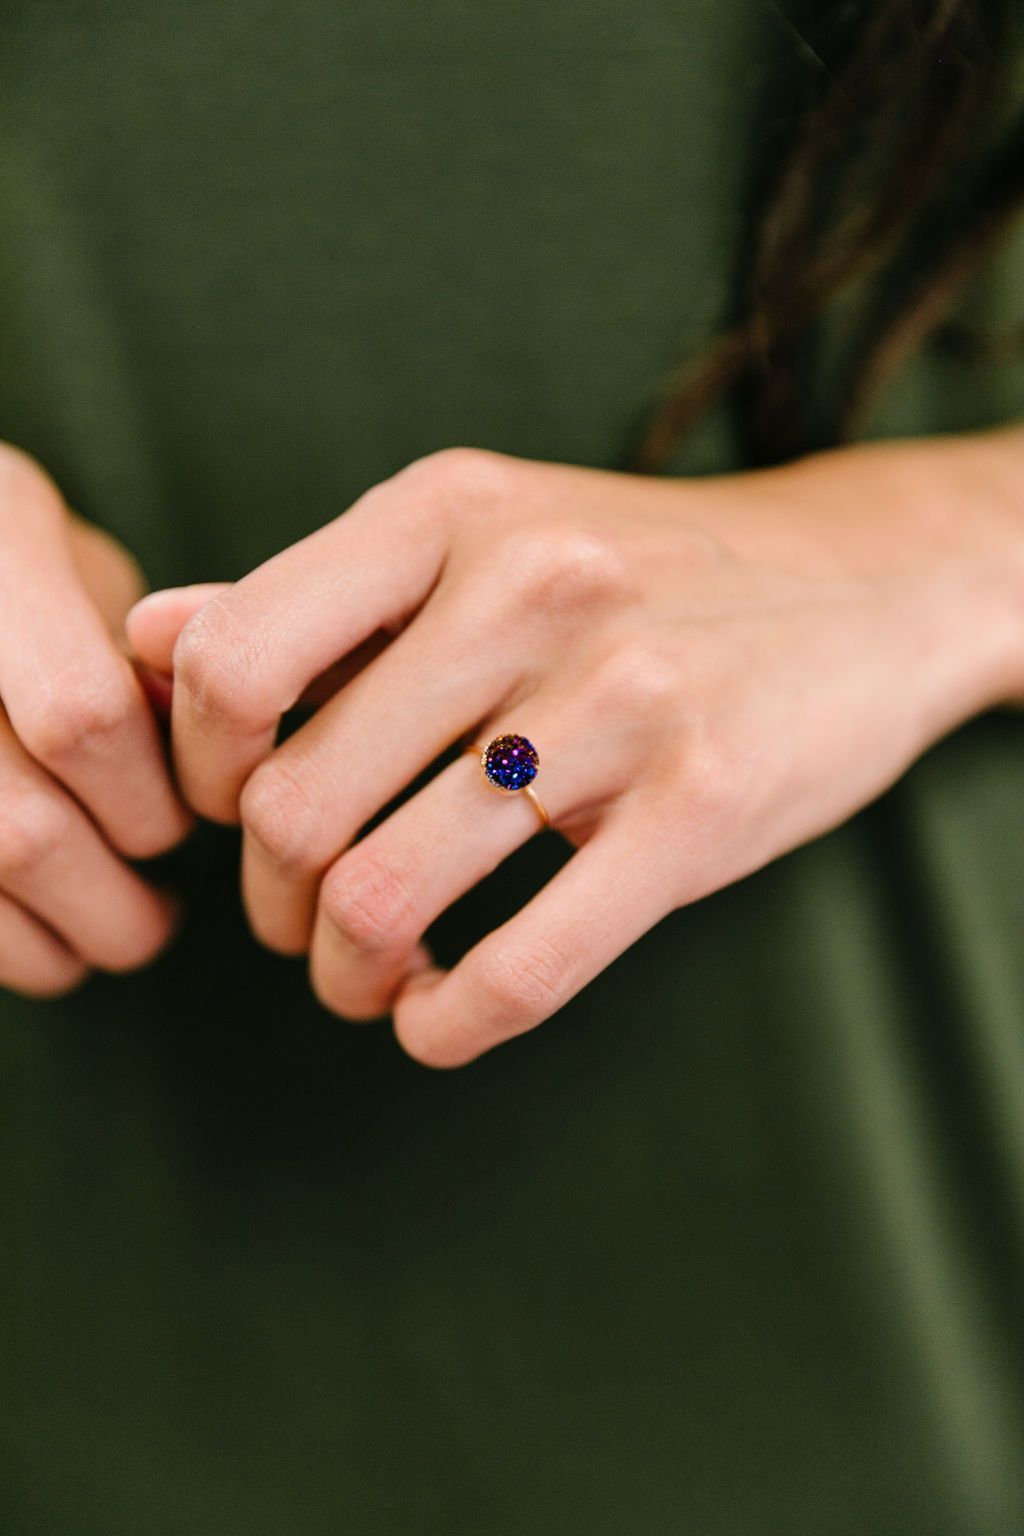 Druzy Adjustable Ring In Midnight Blue - Boho Valley Boutique